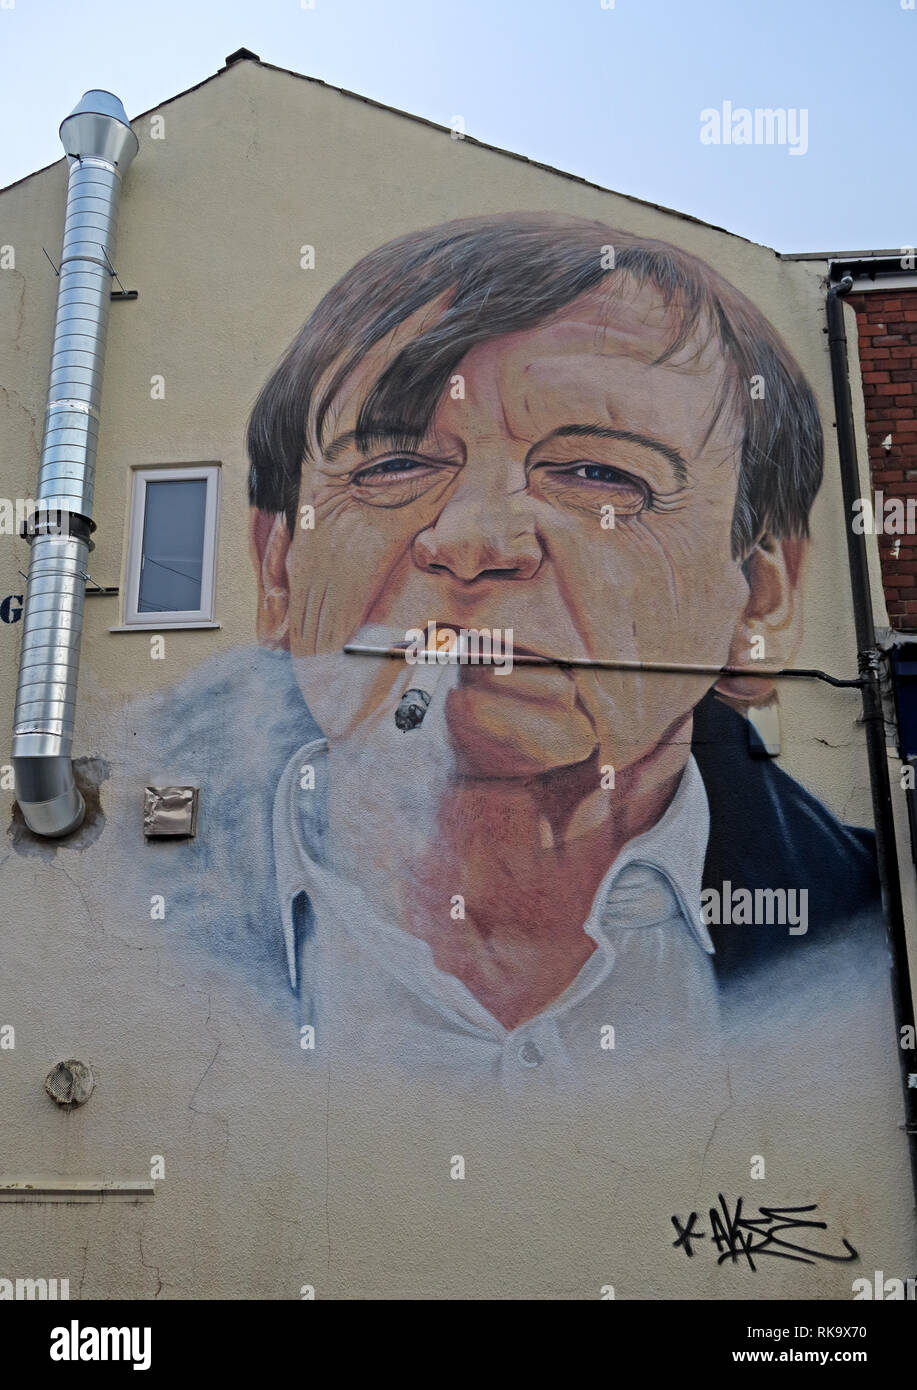 GoTonySmith,HotpixUK,@HotpixUK,UK,England,North West England,Manchester,Salford music,icon,icons,band,bands,Salford bands,building,historic,history,Manchester music,Salford,Mark E. Smith Quote,smoking,smoker,Mark E Smith smoking,interview,8 Clifton Road,Prestwich,bury,Prestwich Art Festival,Akse P19,graffiti artist,Guardian newspaper interview,cigarette,in mouth,post-punk bands,cult,music icon,face